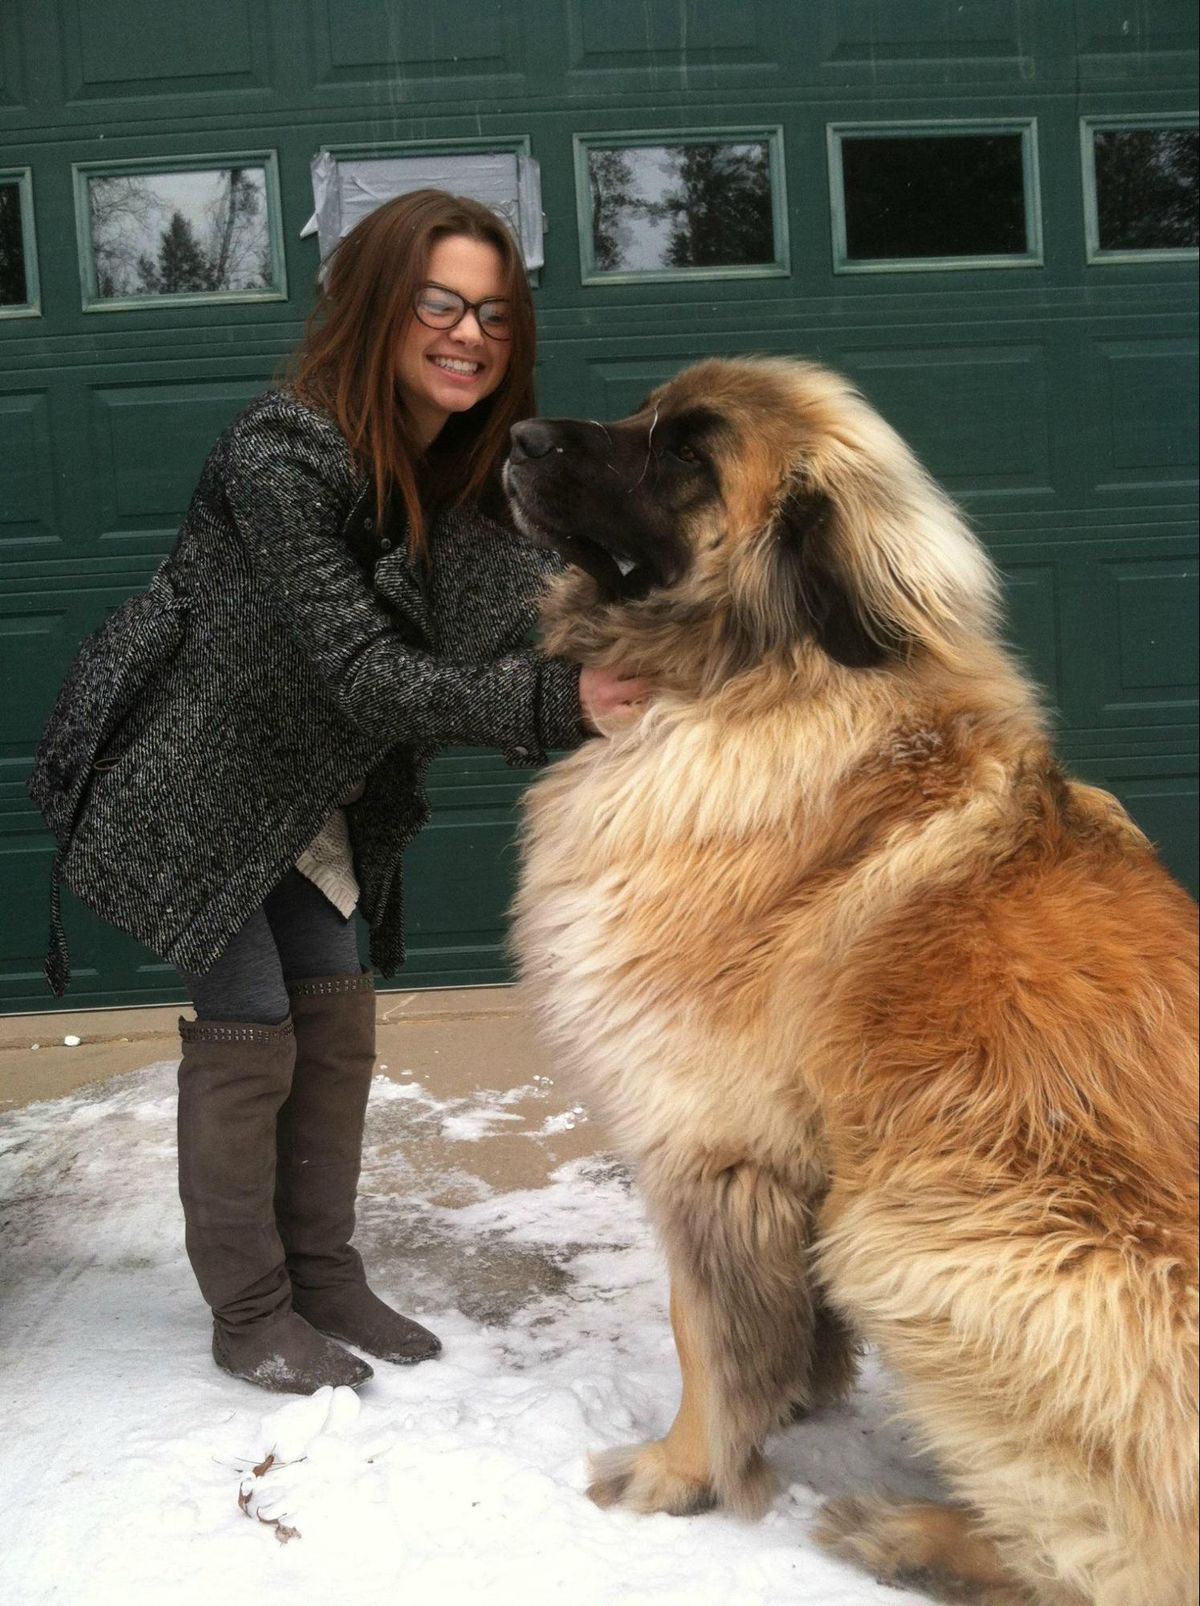 Leonberger A Cross Between Newfoundland St Bernard And Pyrenean Mountain Dog Looking A Bit Like Lions They Reach 170 Lbs Cute Animals Animals Puppies